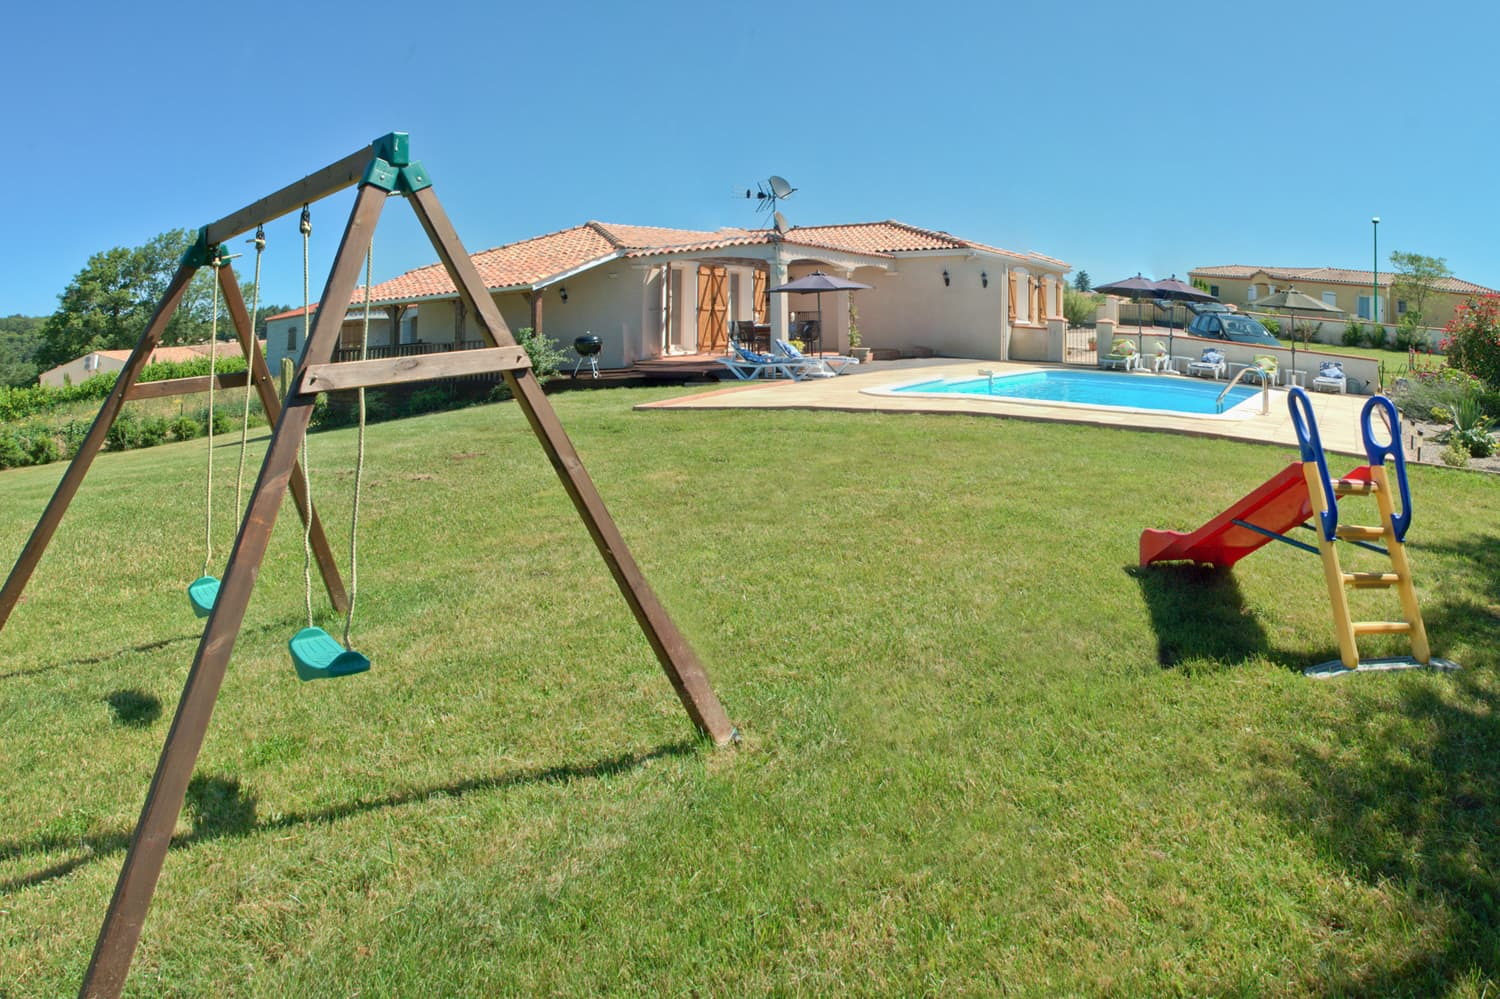 Garden with slide and swings